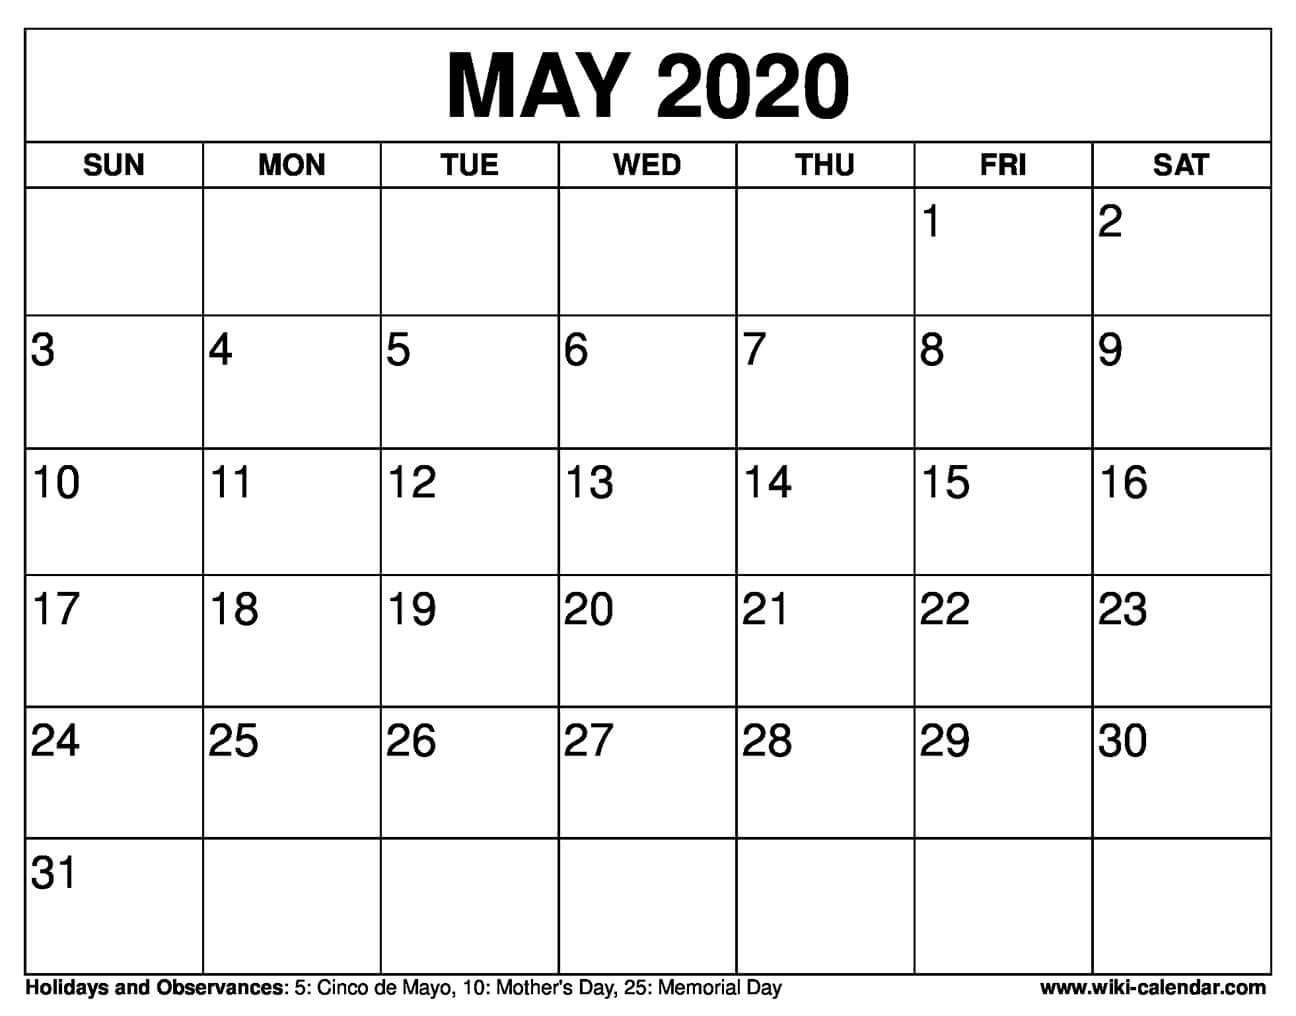 Free Printable May 2020 Calendars  Print Free Calendars Without Downloading